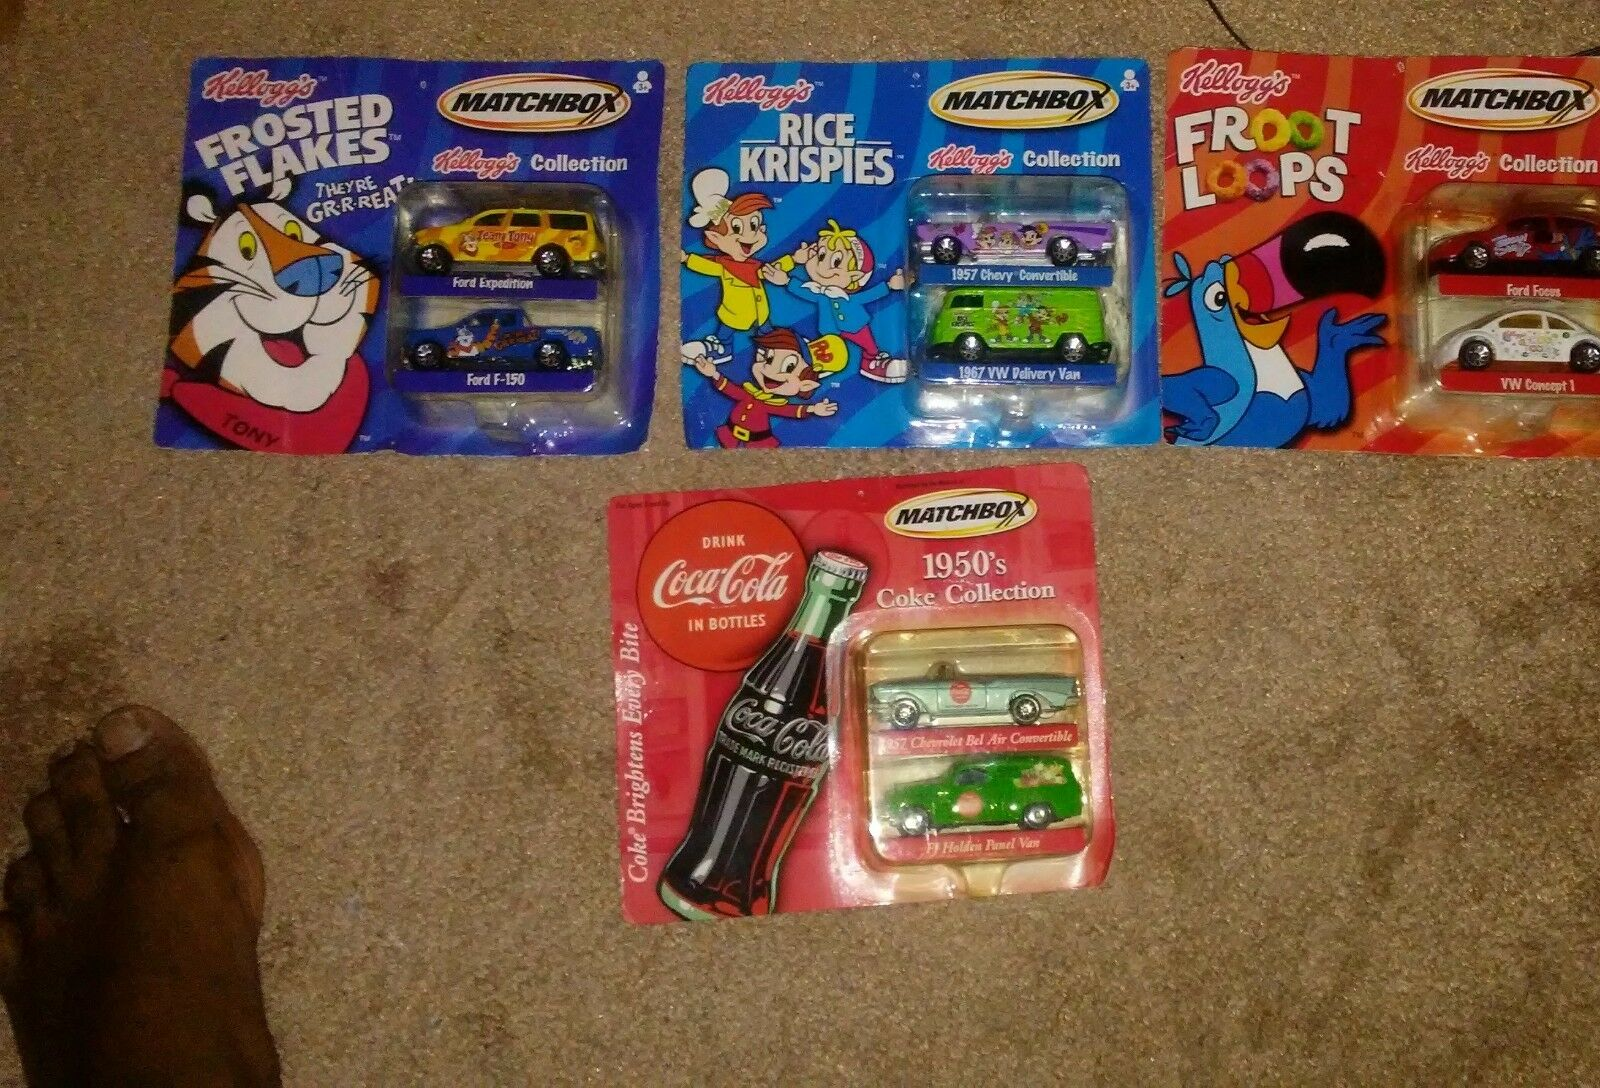 MATCHBOX KELLOGG'S COLLECTION  FROOT LOOOPS FROSTED FLAKES RICE KRISPIES, COKE